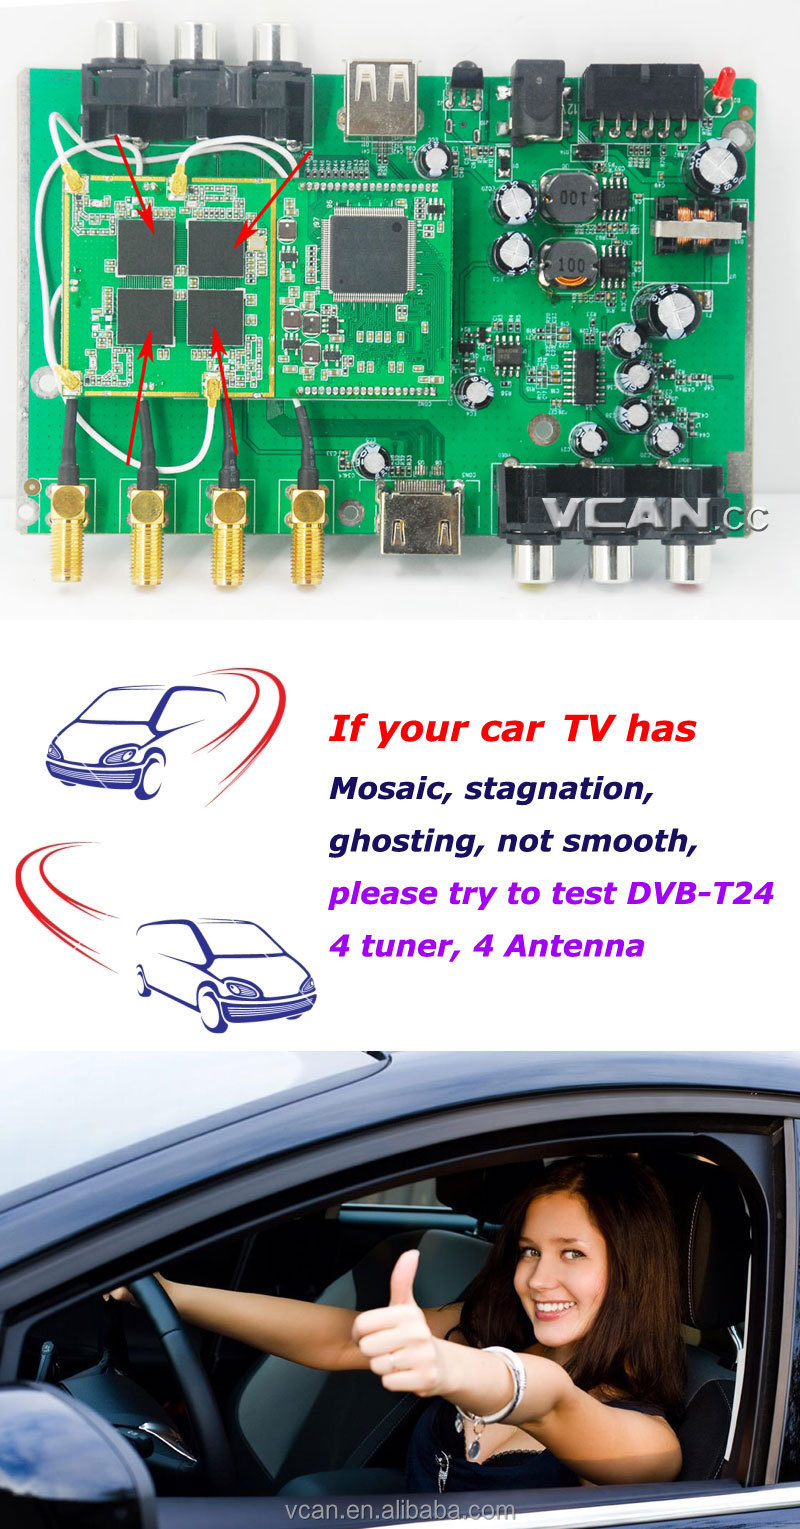 DVB-T24 Car DVB-T2 TV tuner USB HDTV 4 Tuners4 antenna High Speed